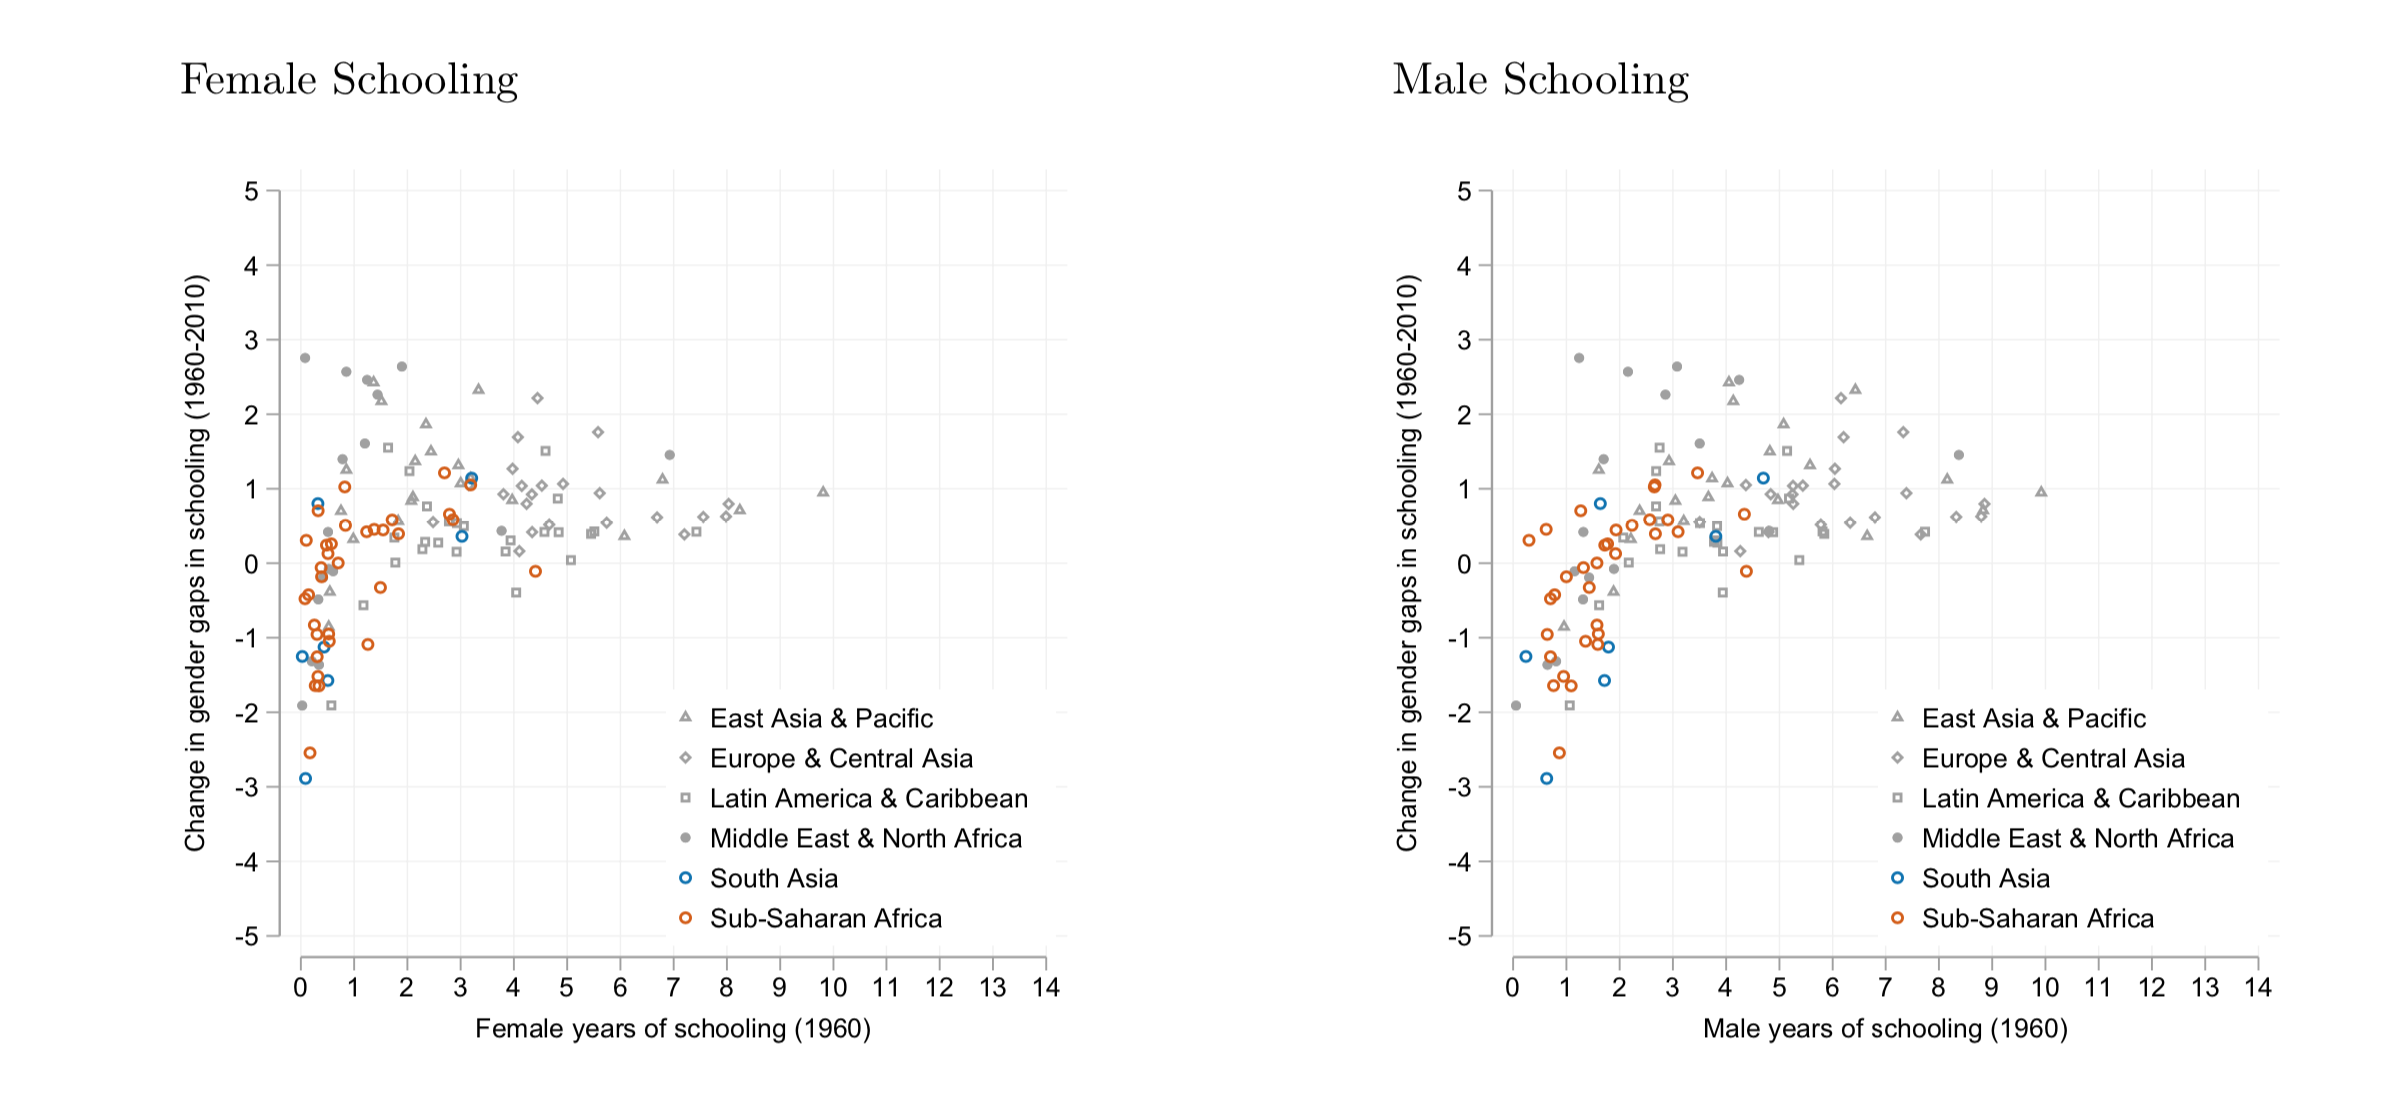 Scatter plot breaking down change in schooling from 1960 to 2010 for men and women separately, at the country level